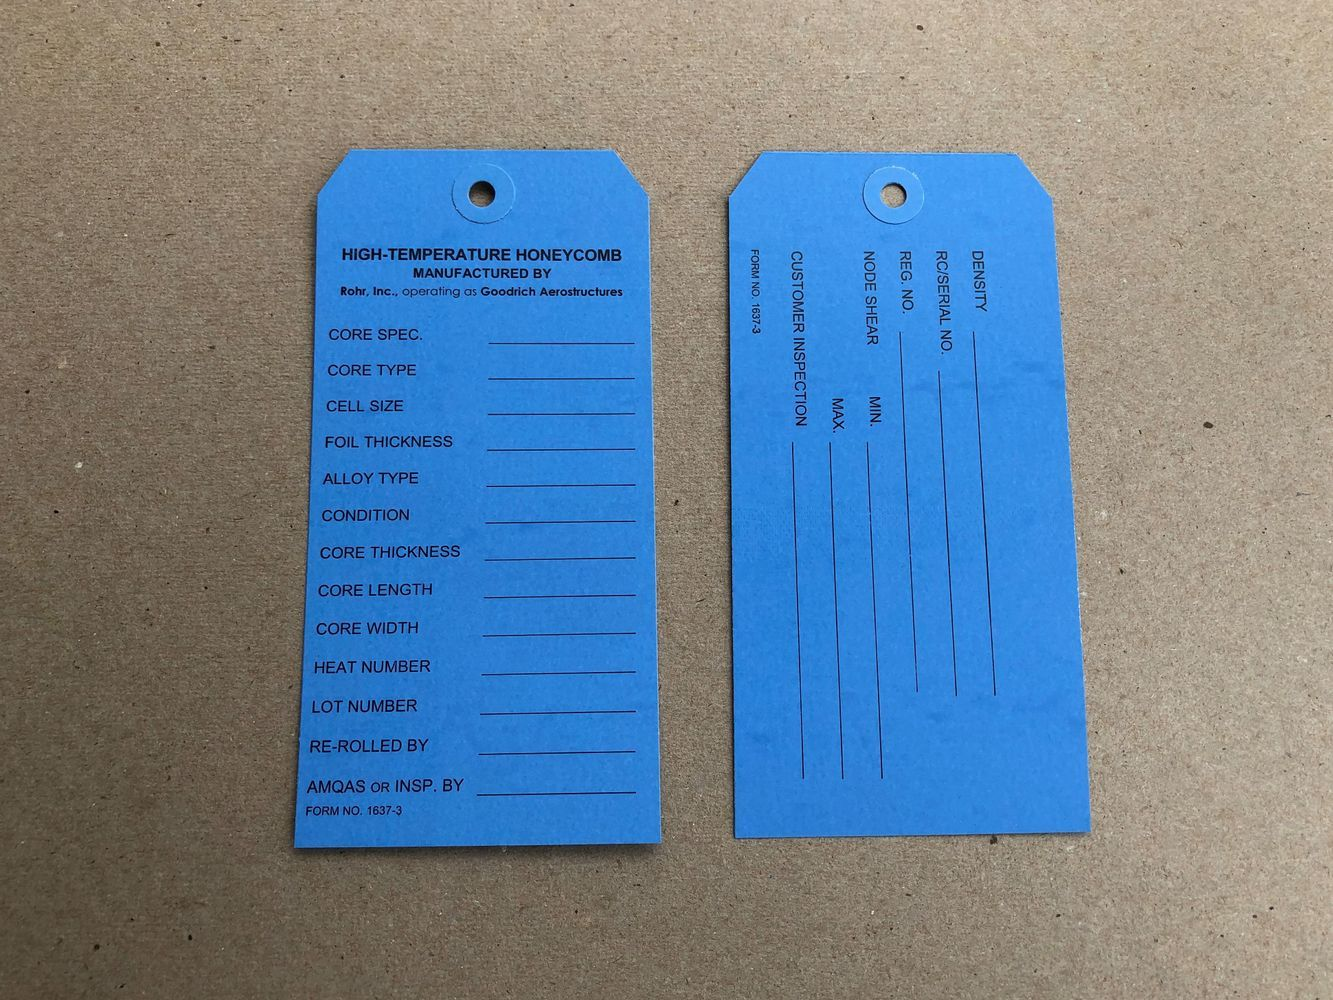 Large Manufacturing Tags